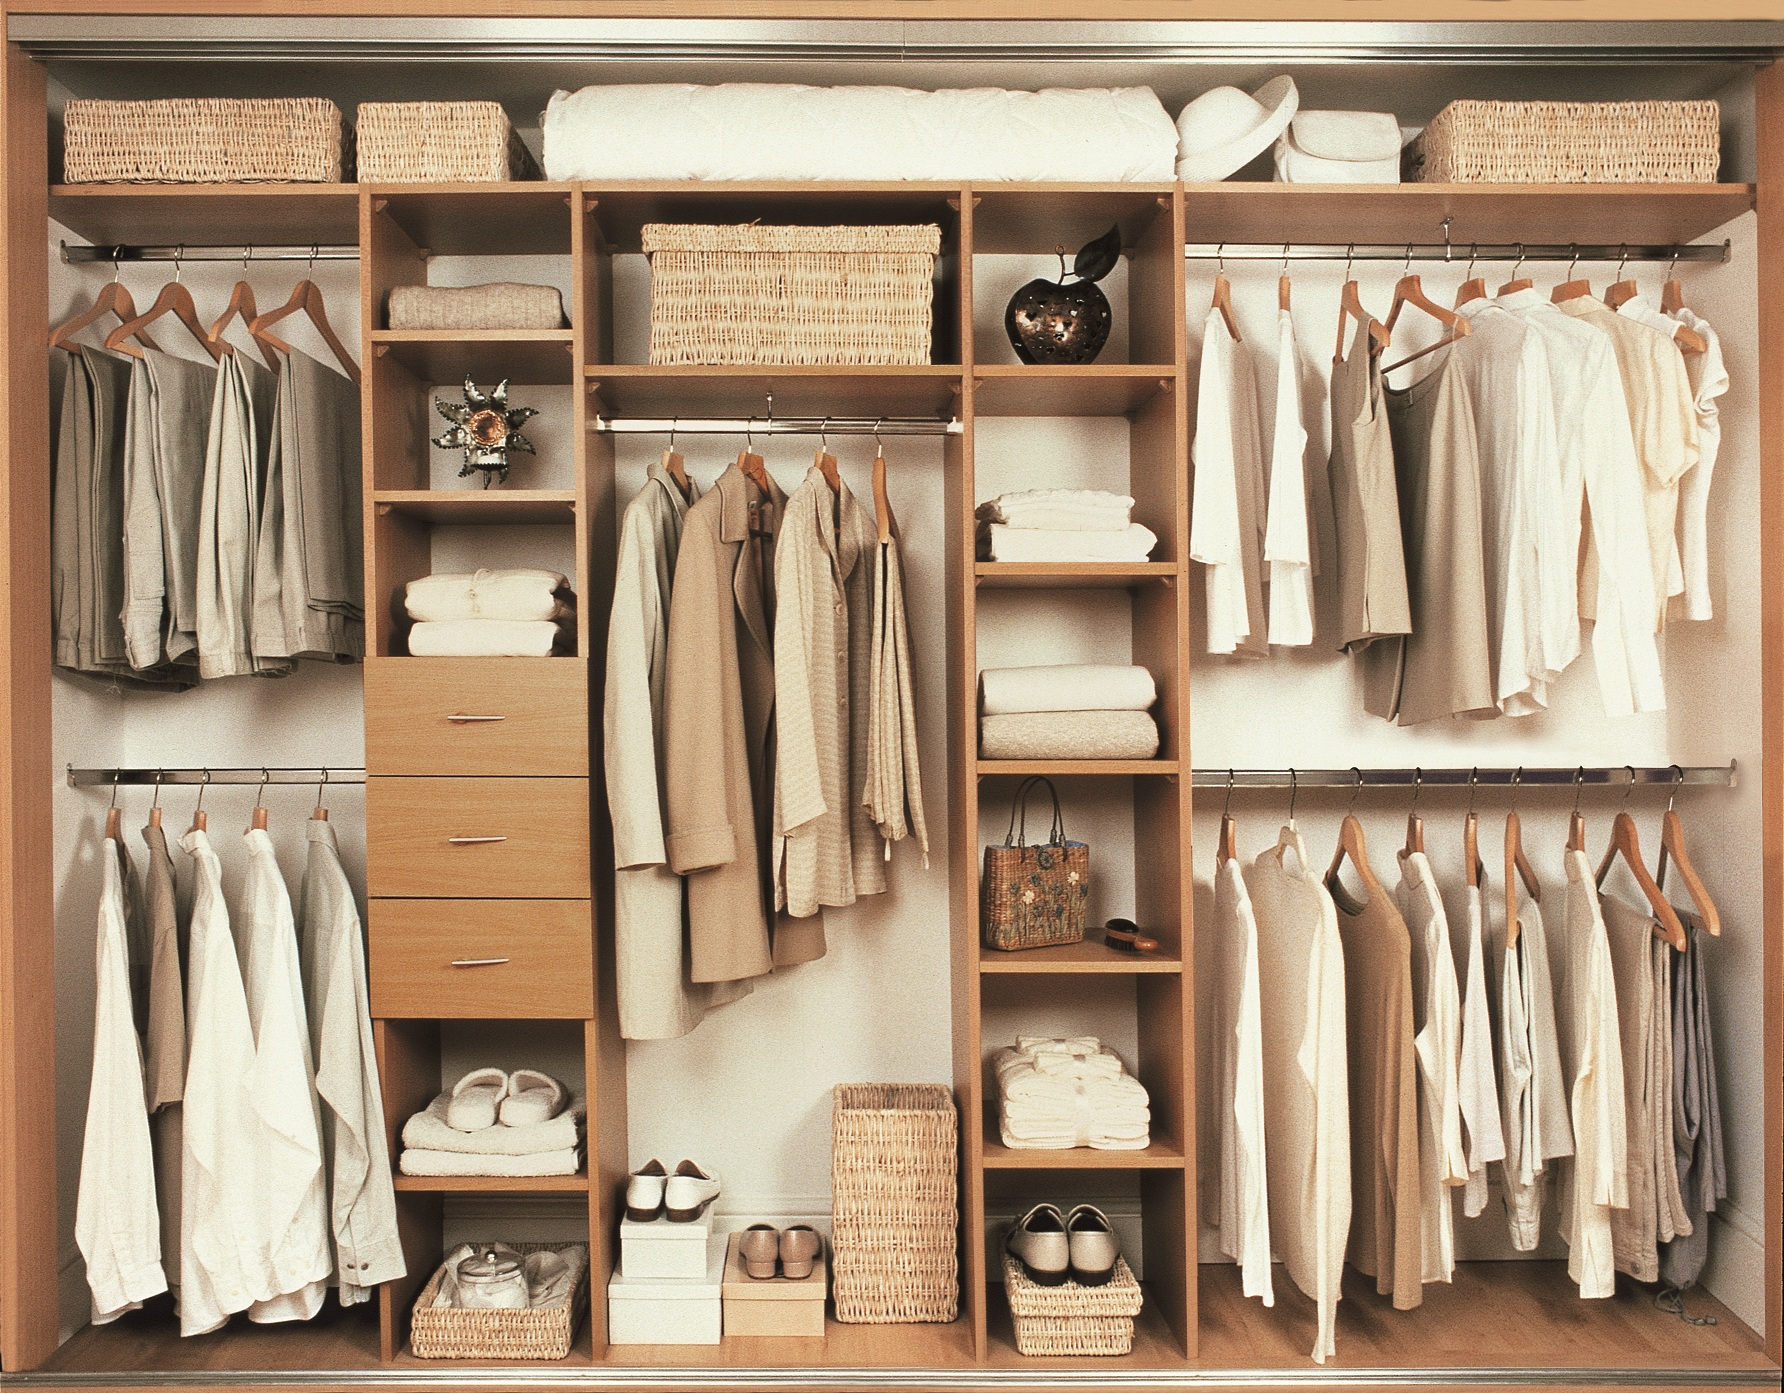 Closet Planner for Best Storage System Ideas: Home Depot Closet | Closet Organizers Usa | Closet Planner